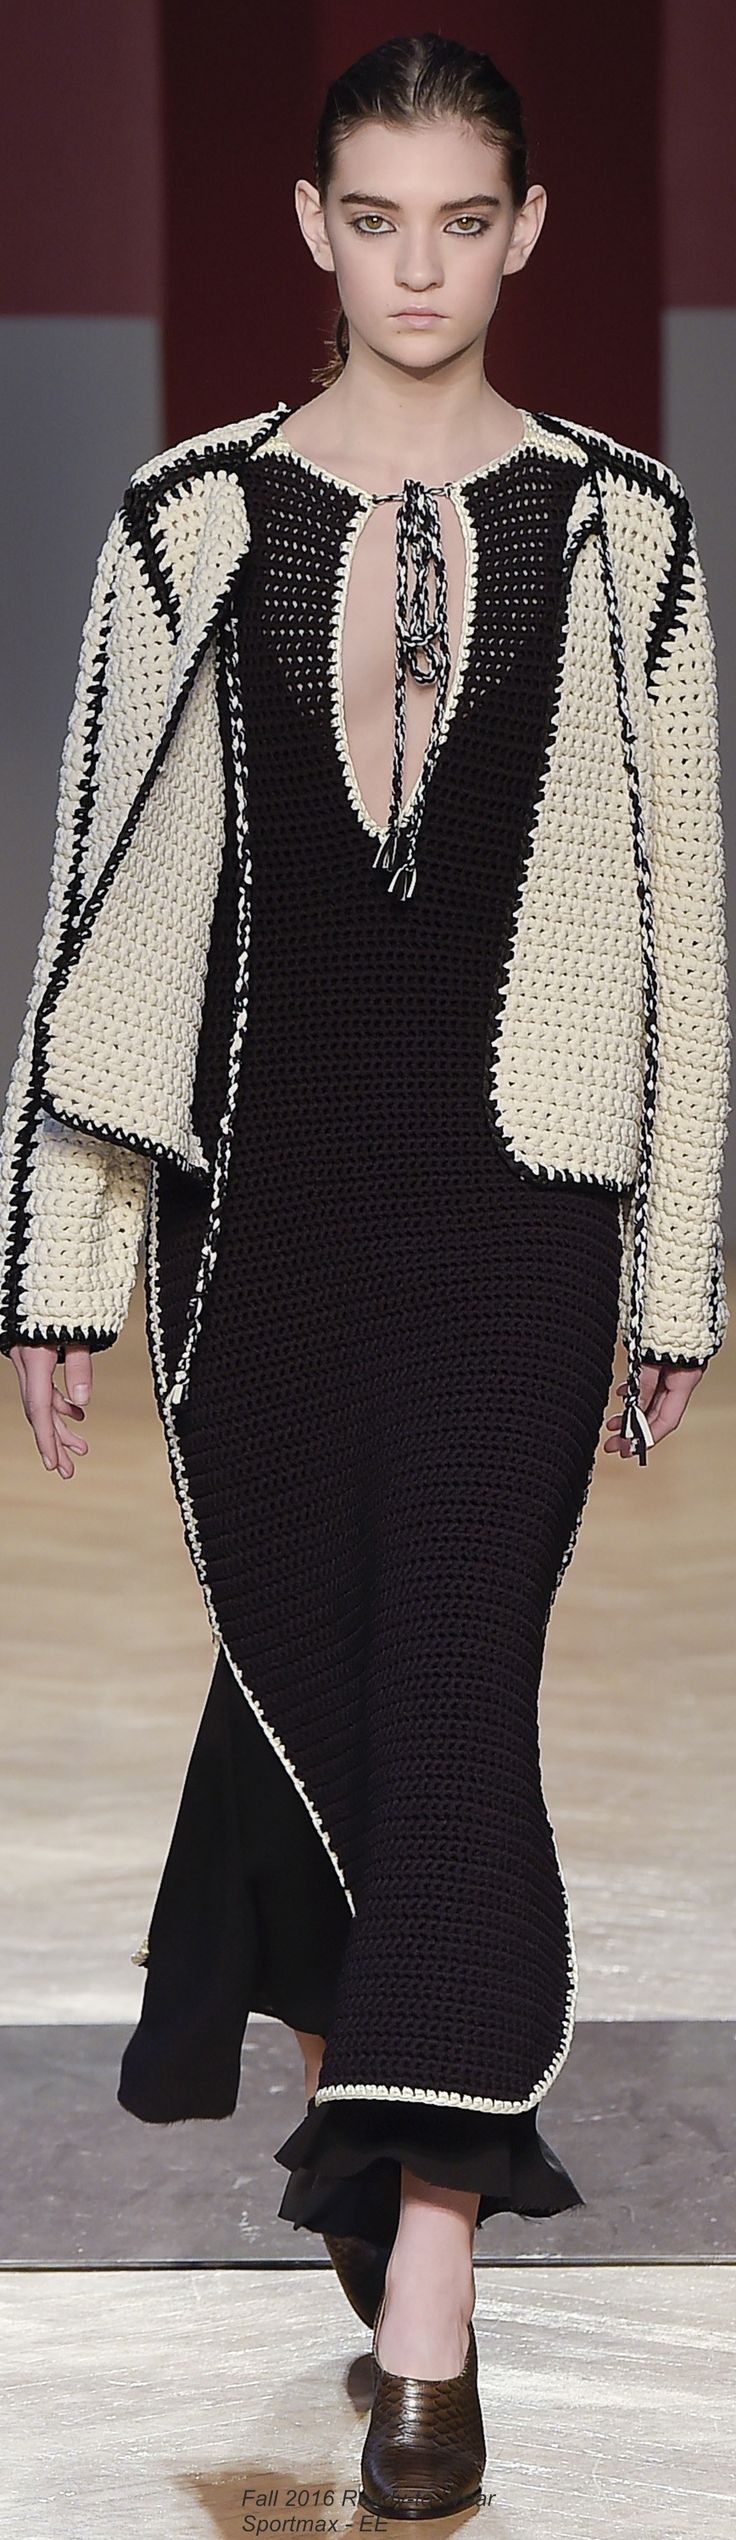 Sportmax Fall 2016